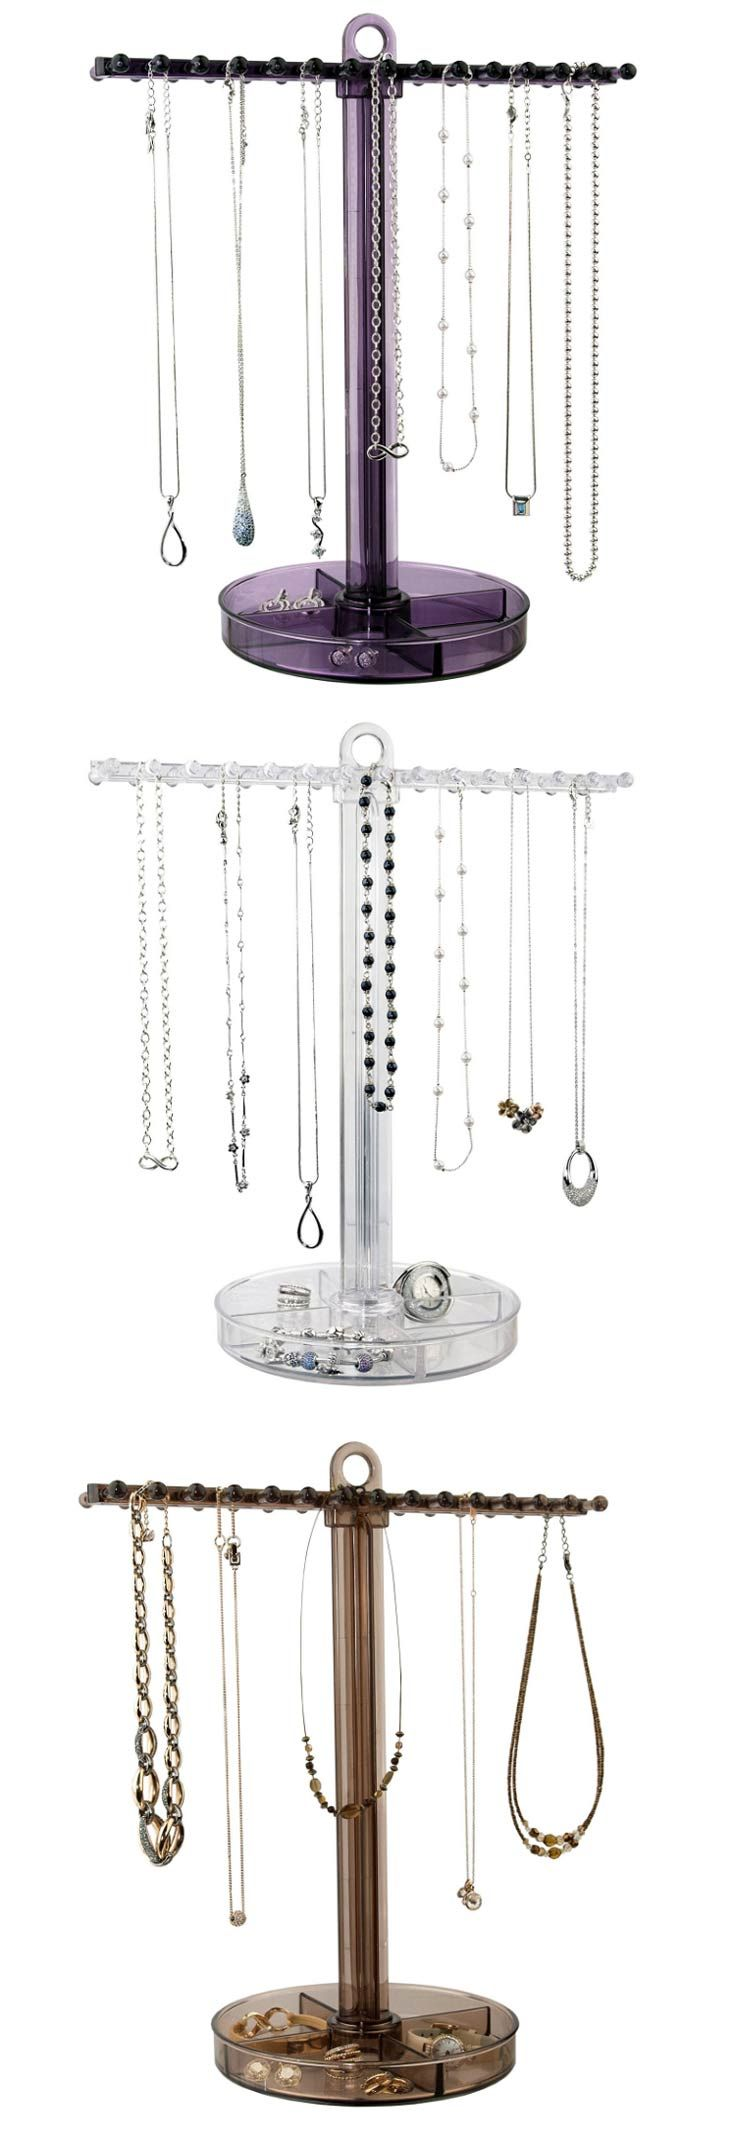 HOT NEW ITEM! Keep your necklaces and bracelets untangled and easy to find with this necklace holder and jewelry tray. The horizontal bar can hold 30 necklaces or bracelets up to 24 inches in length - including chunky ones. The base keeps small items like earrings and rings easy to find. Choose from three colors: clear, plum and sepia. Ideal for home use and displaying jewelry in retail stores and salons. Available on Amazon Prime! Price: $14.95. Overall dimensions: 14.38 inches high…